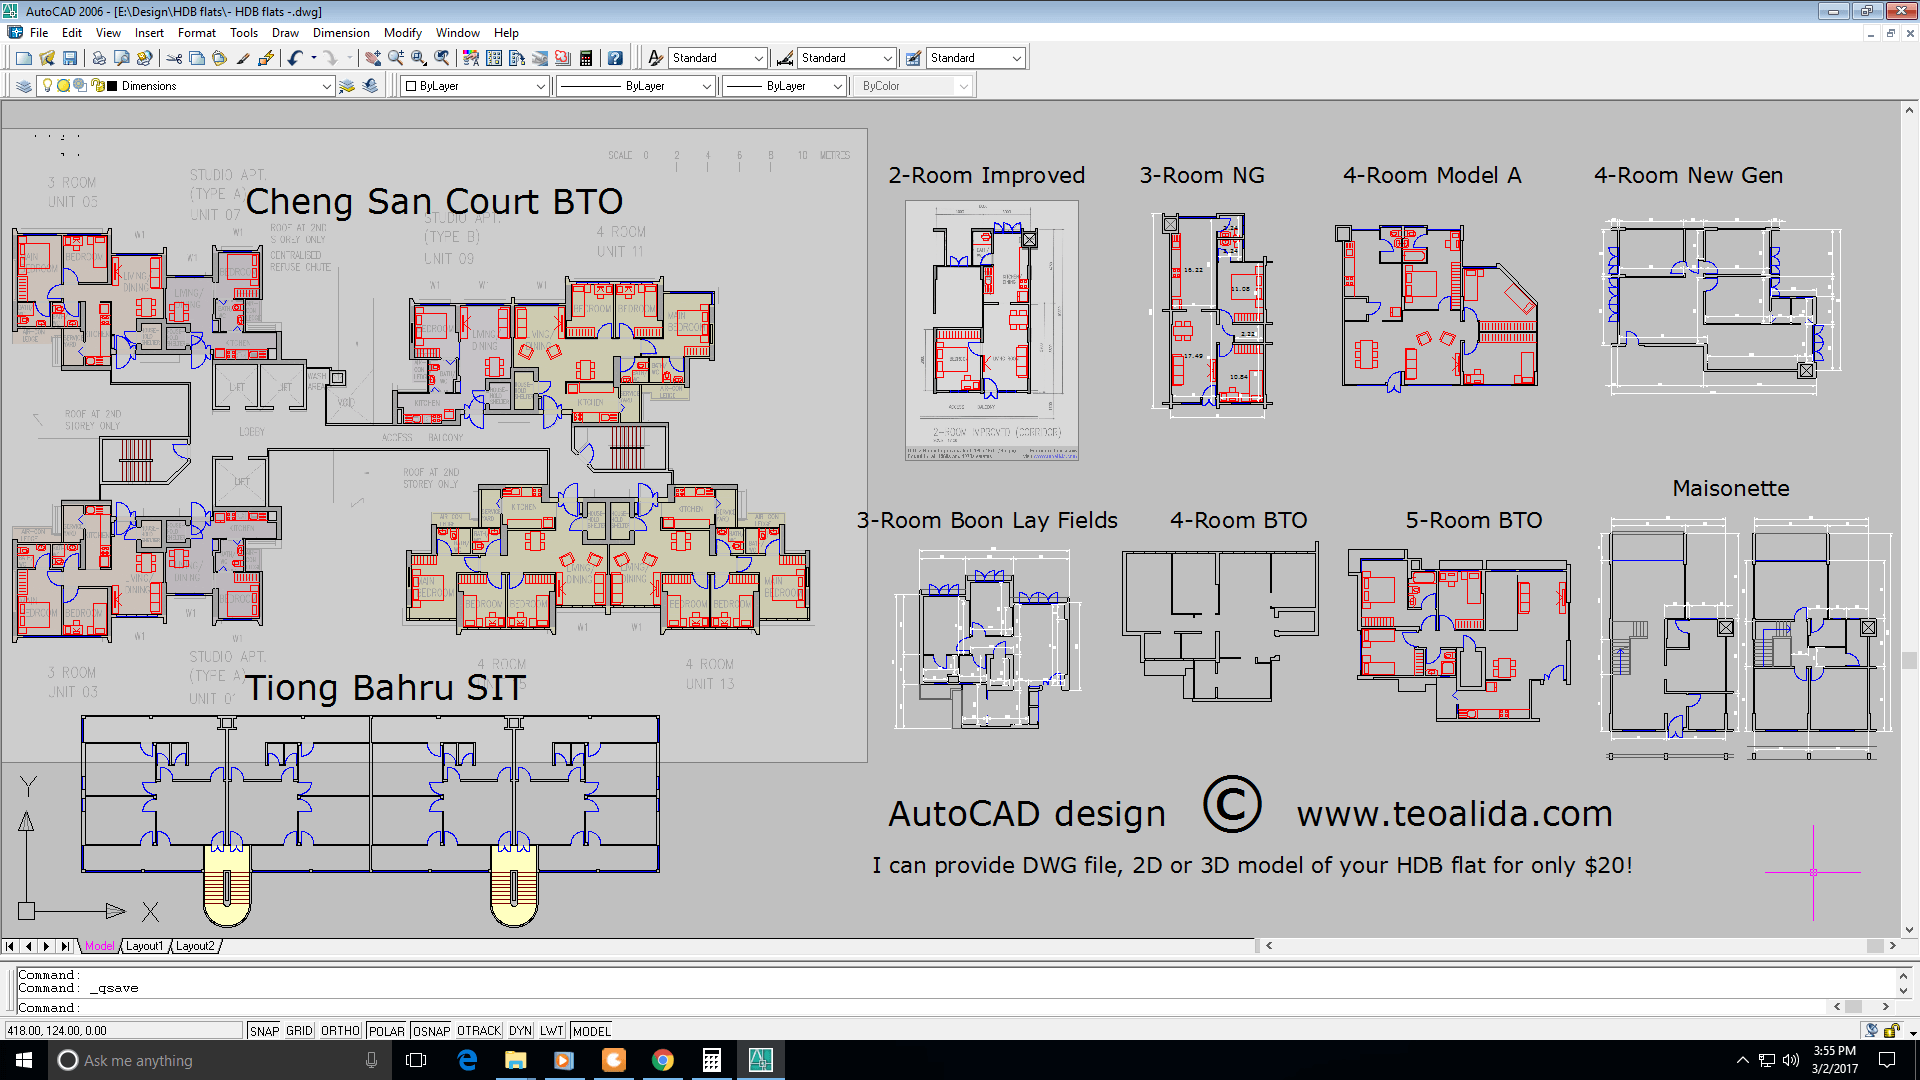 HDB floor plans in AutoCAD